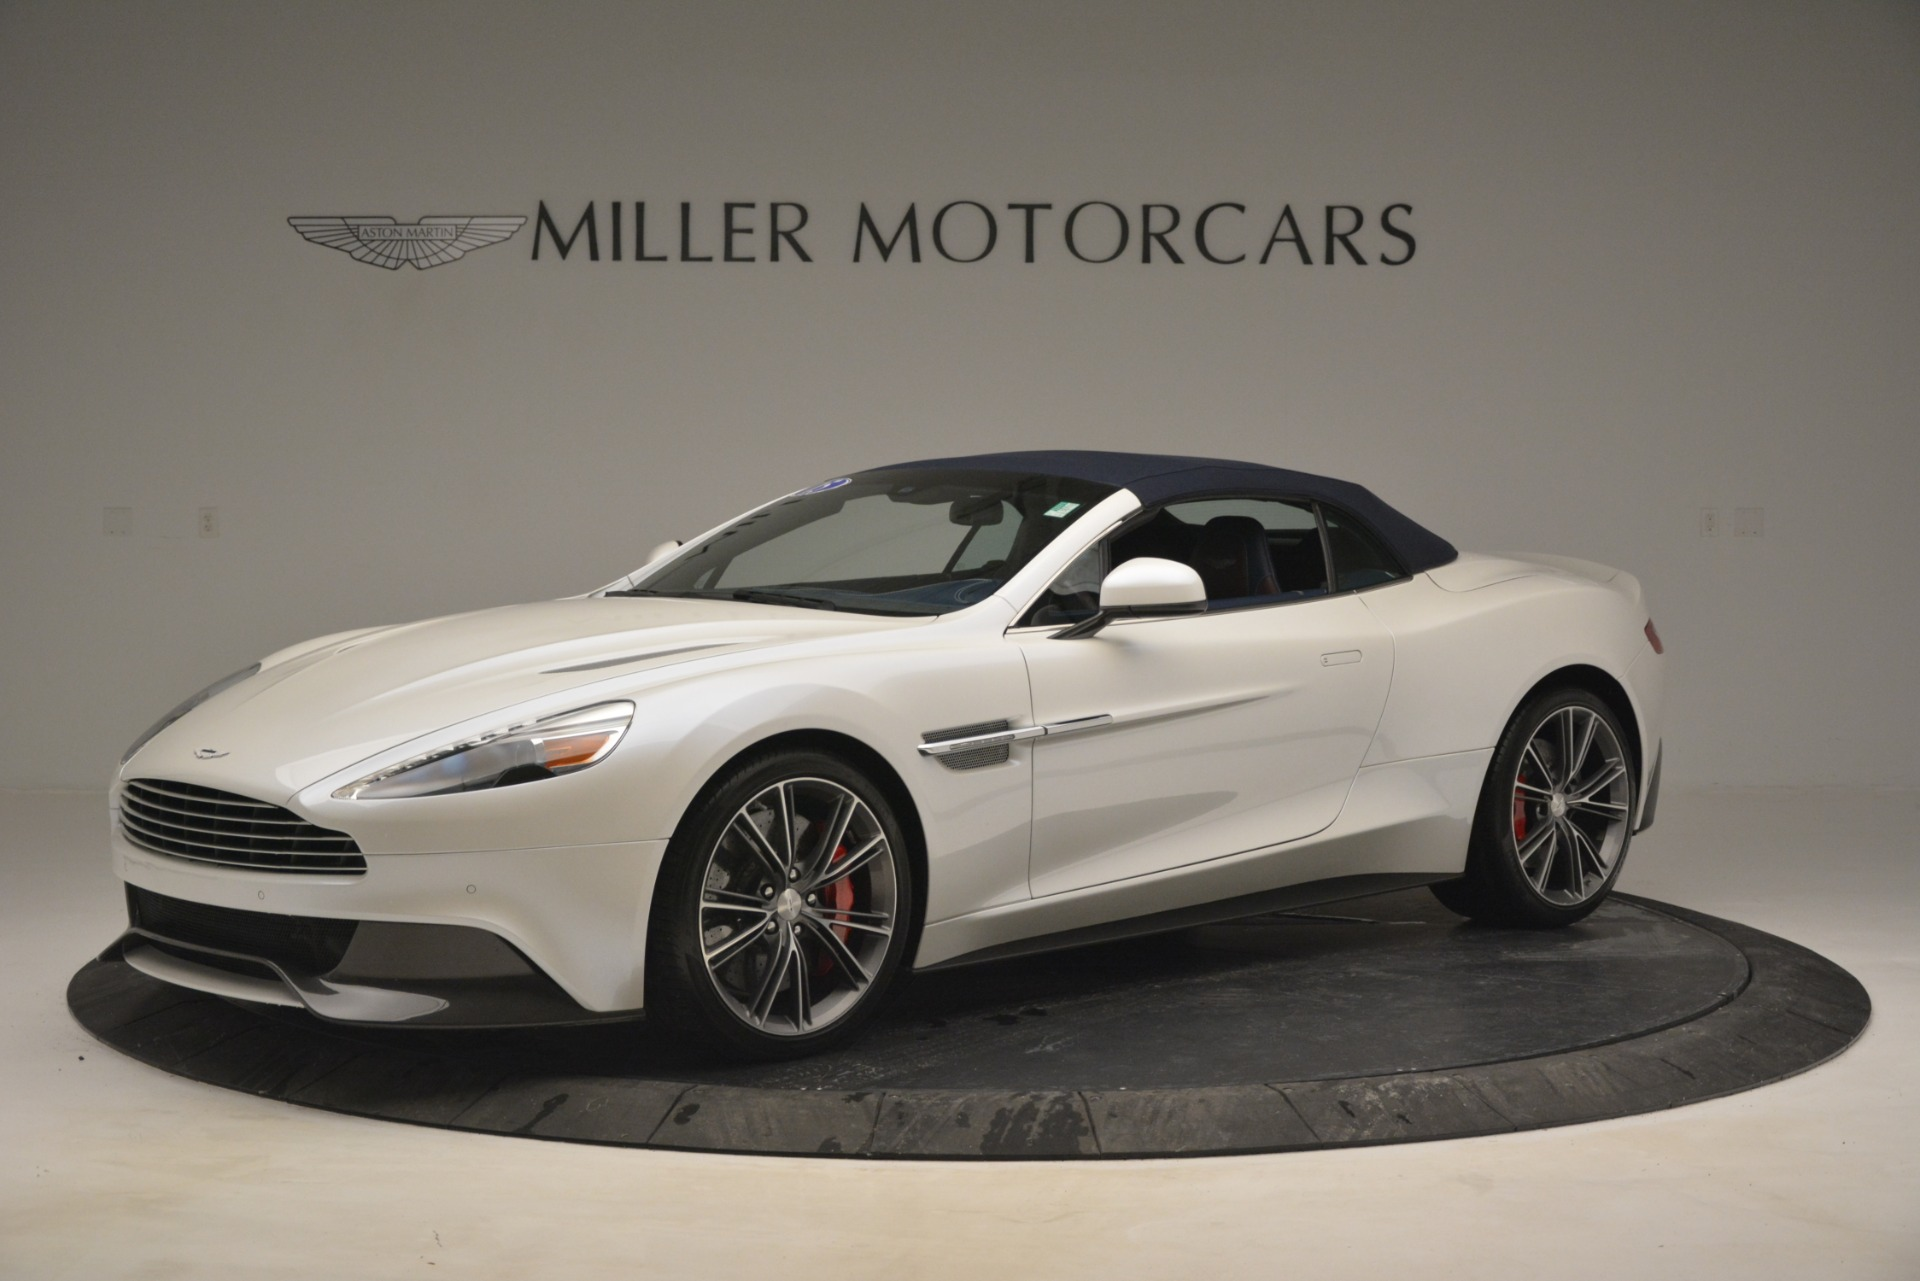 Used 2015 Aston Martin Vanquish Convertible For Sale In Westport, CT 2982_p15